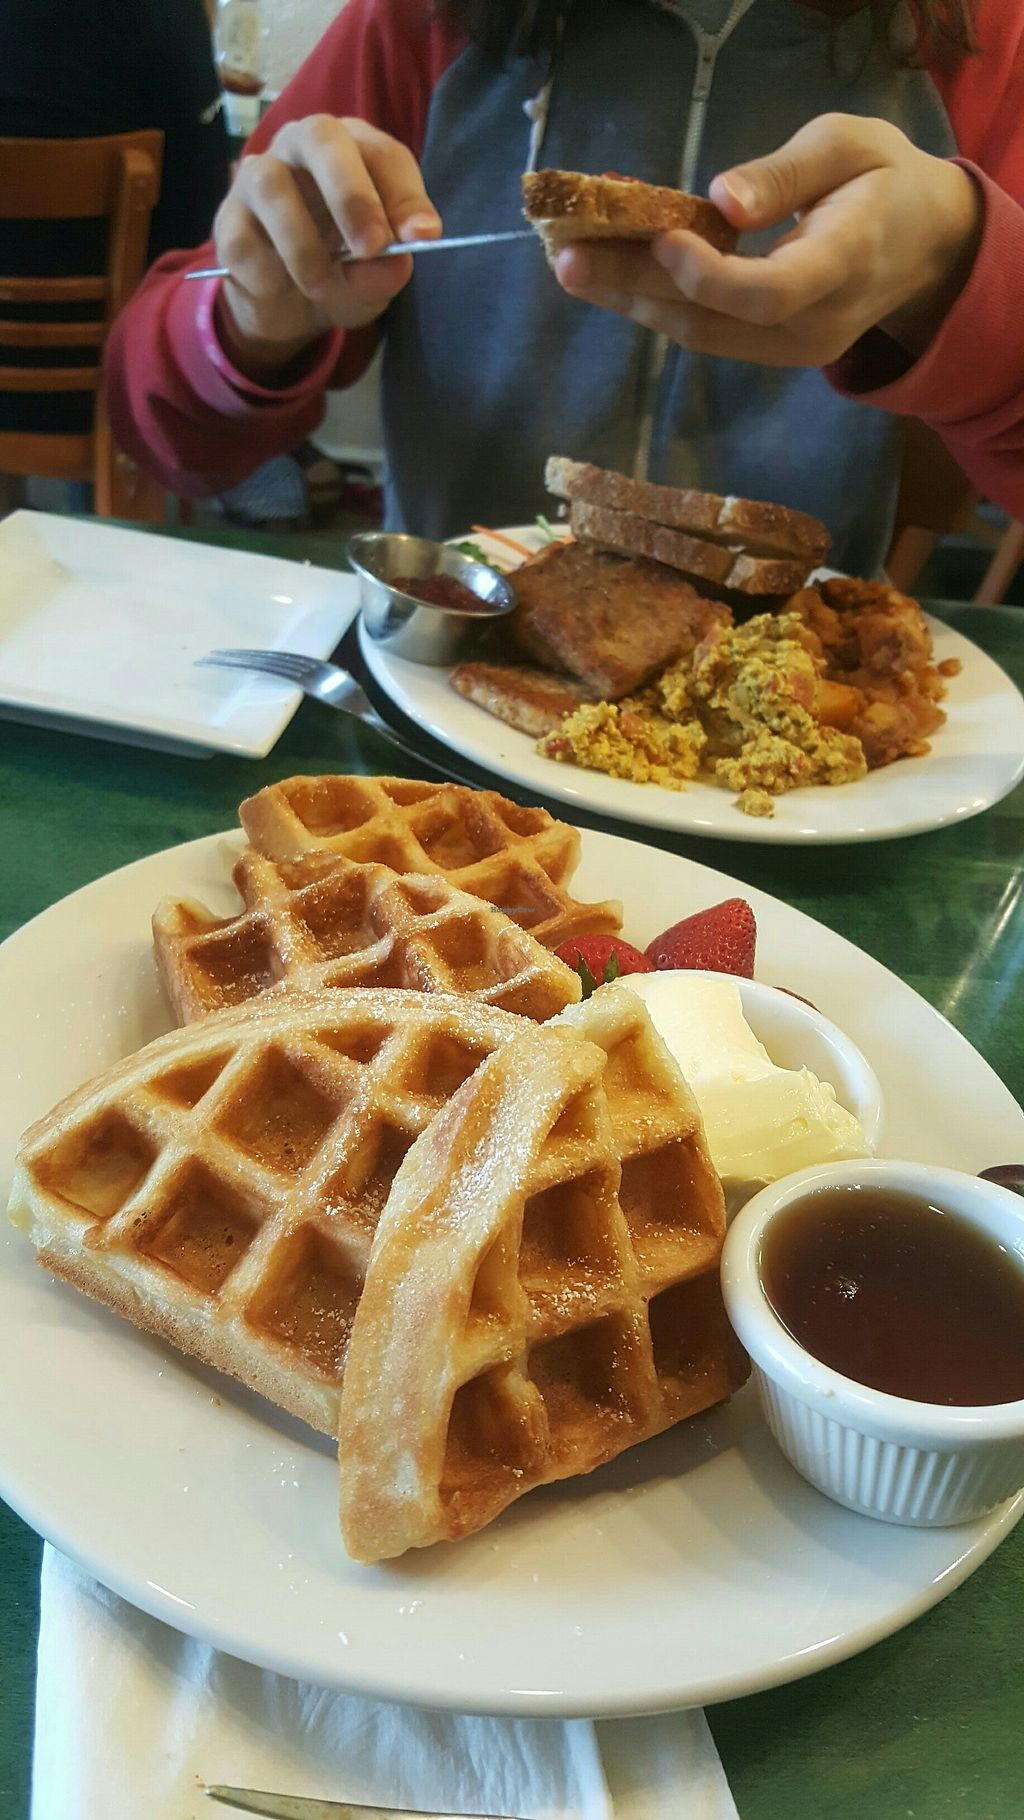 "Photo of Good Karma Cafe  by <a href=""/members/profile/Heidi12"">Heidi12</a> <br/>The best Belgian Waffles I've ever tried <br/> July 30, 2017  - <a href='/contact/abuse/image/22992/286829'>Report</a>"